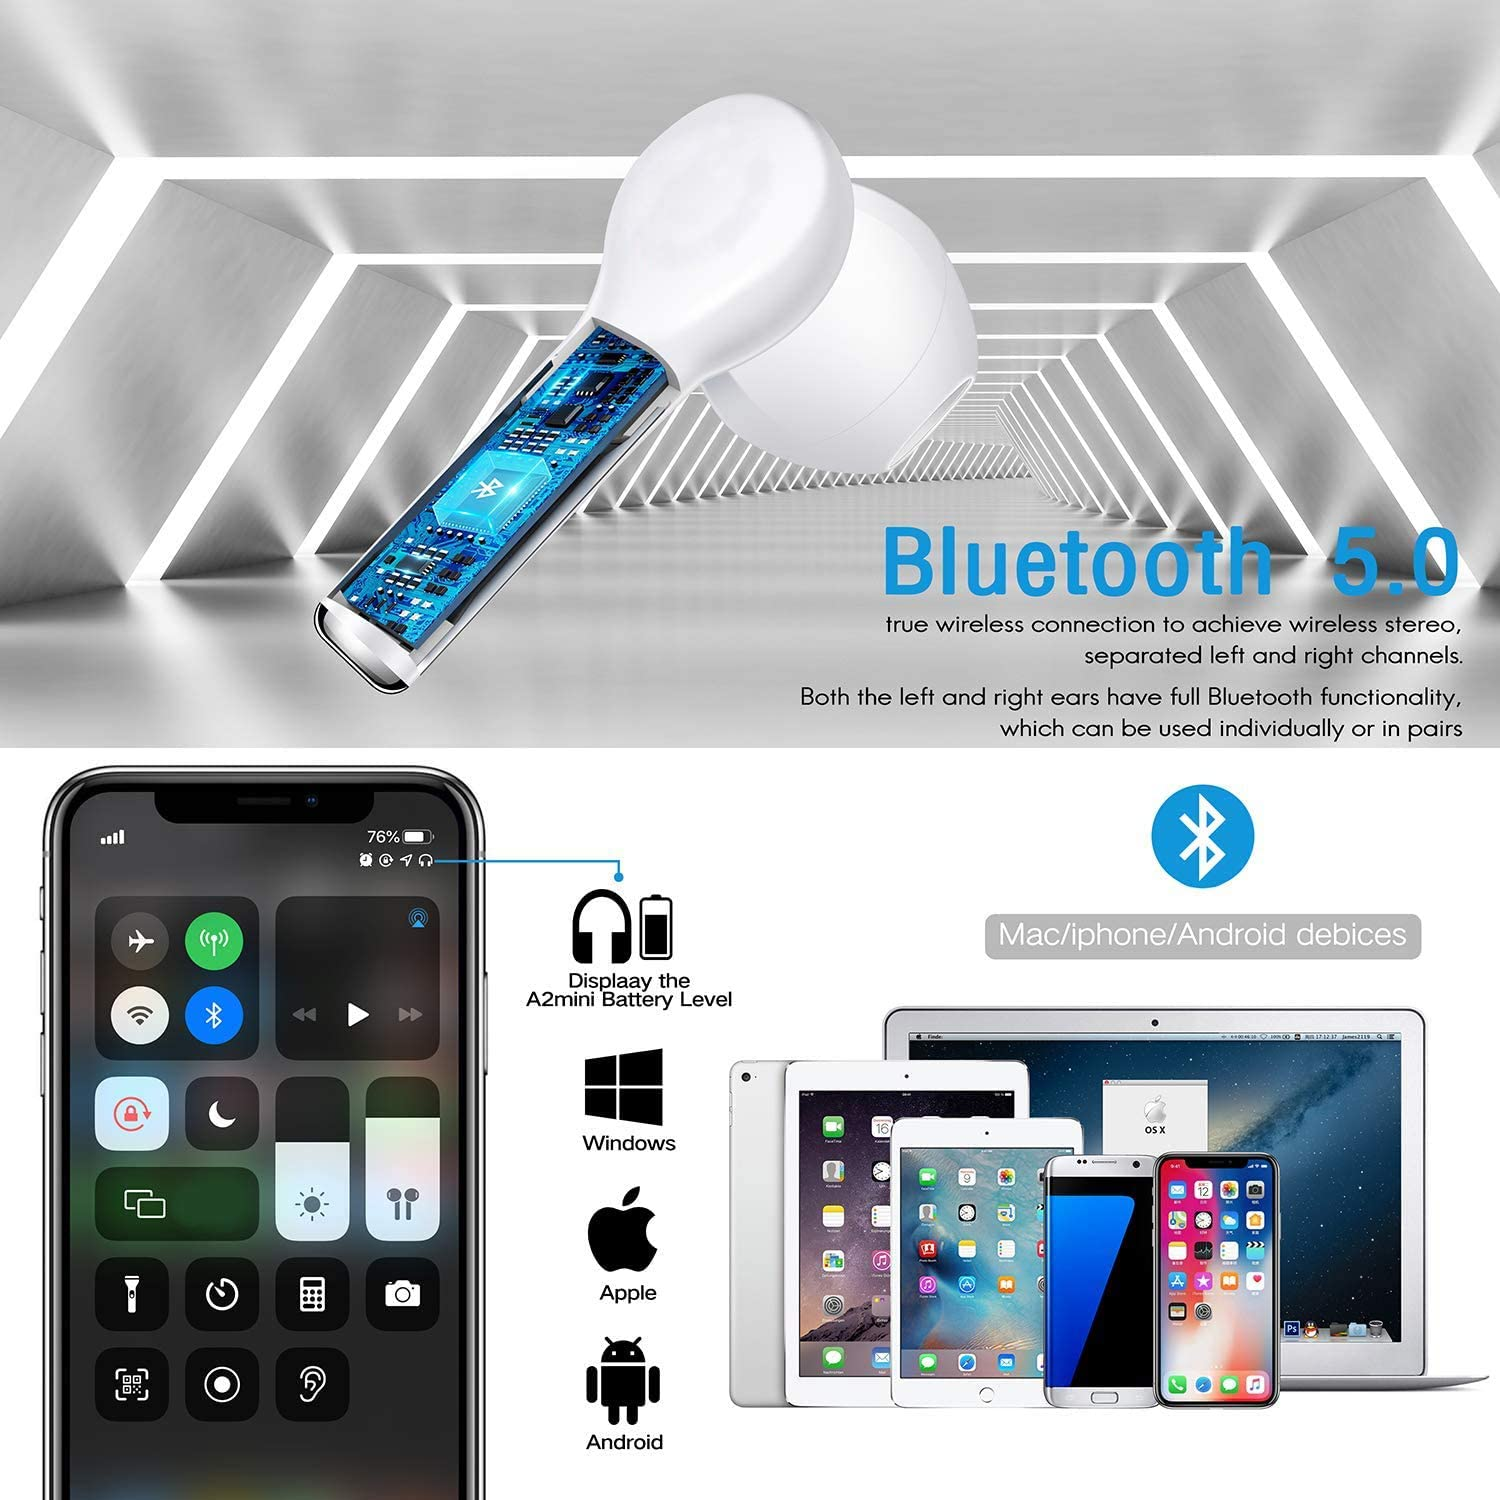 Wireless Earbuds Bluetooth 5.0 Headphones CVC8.0 Noise Canceling Bluetooth Headphones in-Ear 3D Stereo Headset with Fast Charging Case for iPhone//Samsung//Android AirPods Pro Apple Earbuds